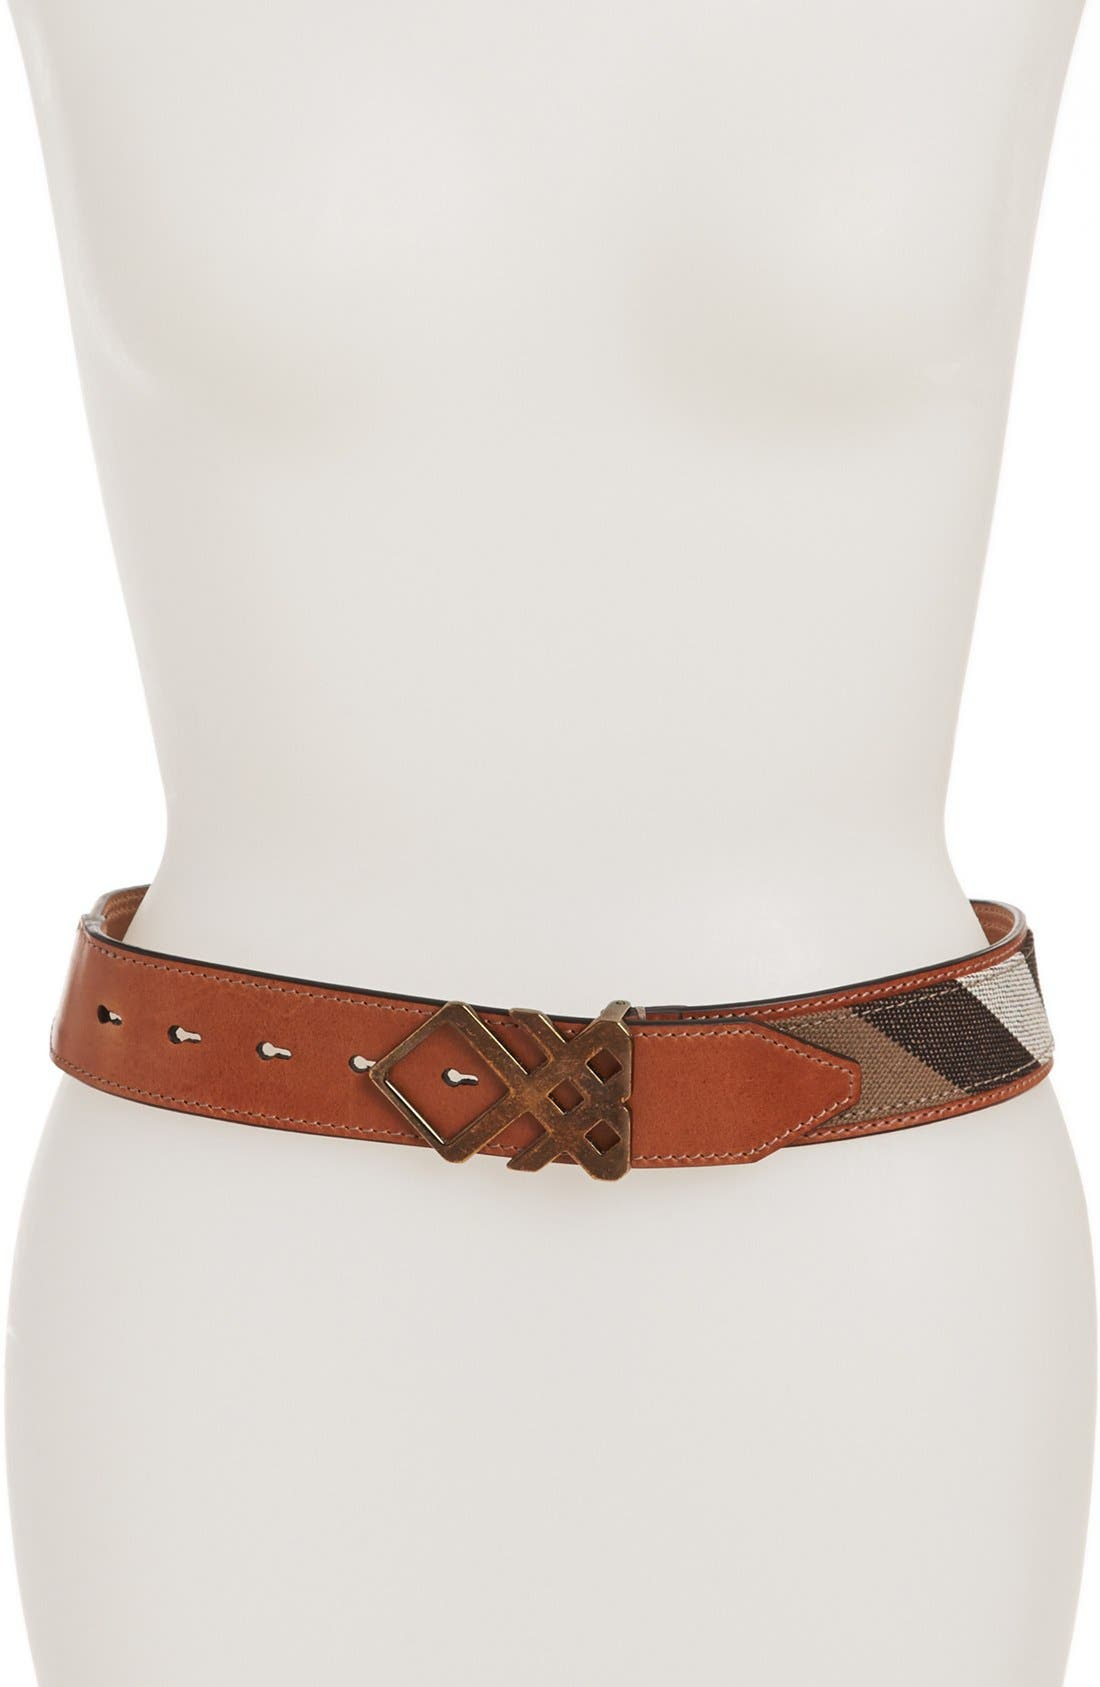 Main Image - Burberry Check Leather Trim Belt